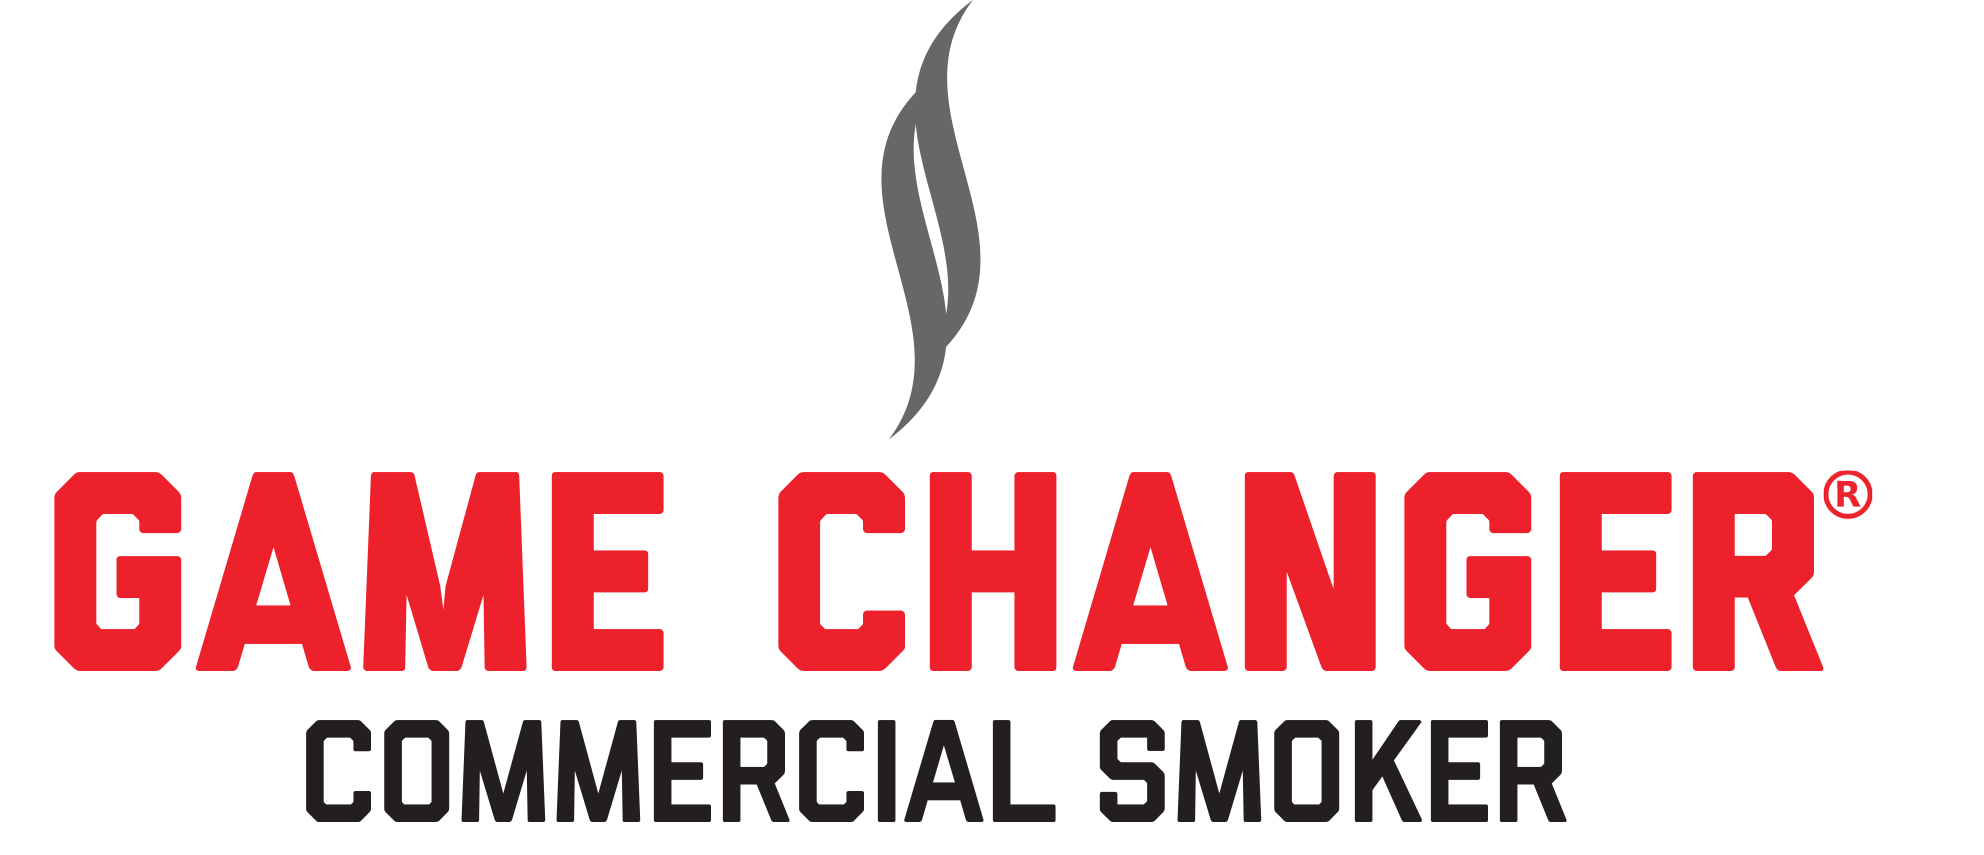 Commercial Smoker - Transparent.png